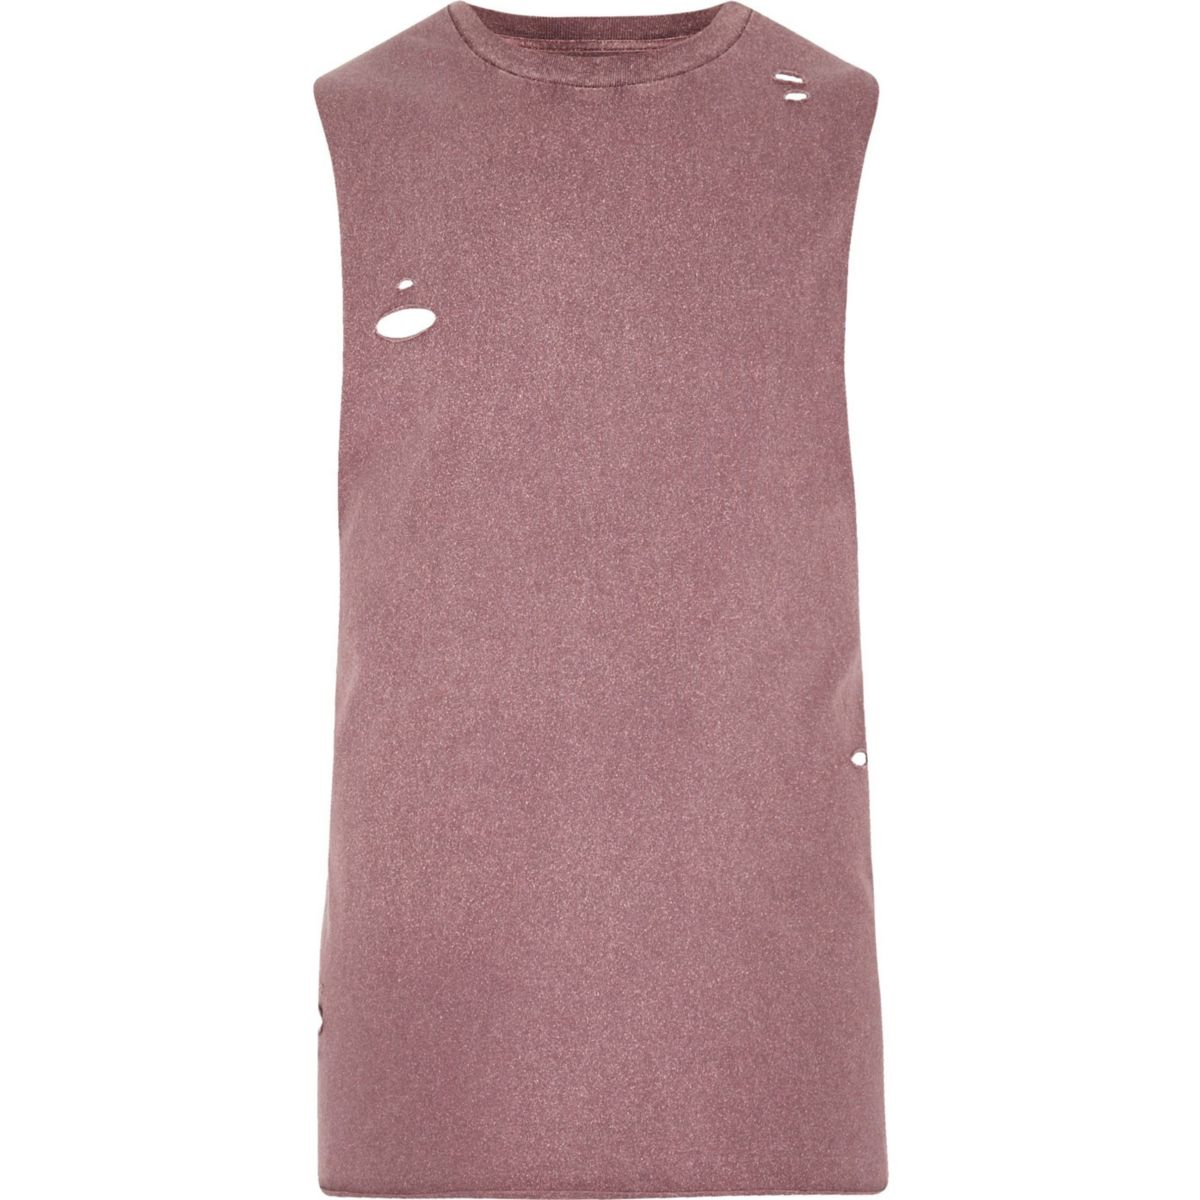 Burgundy distressed washed tank top